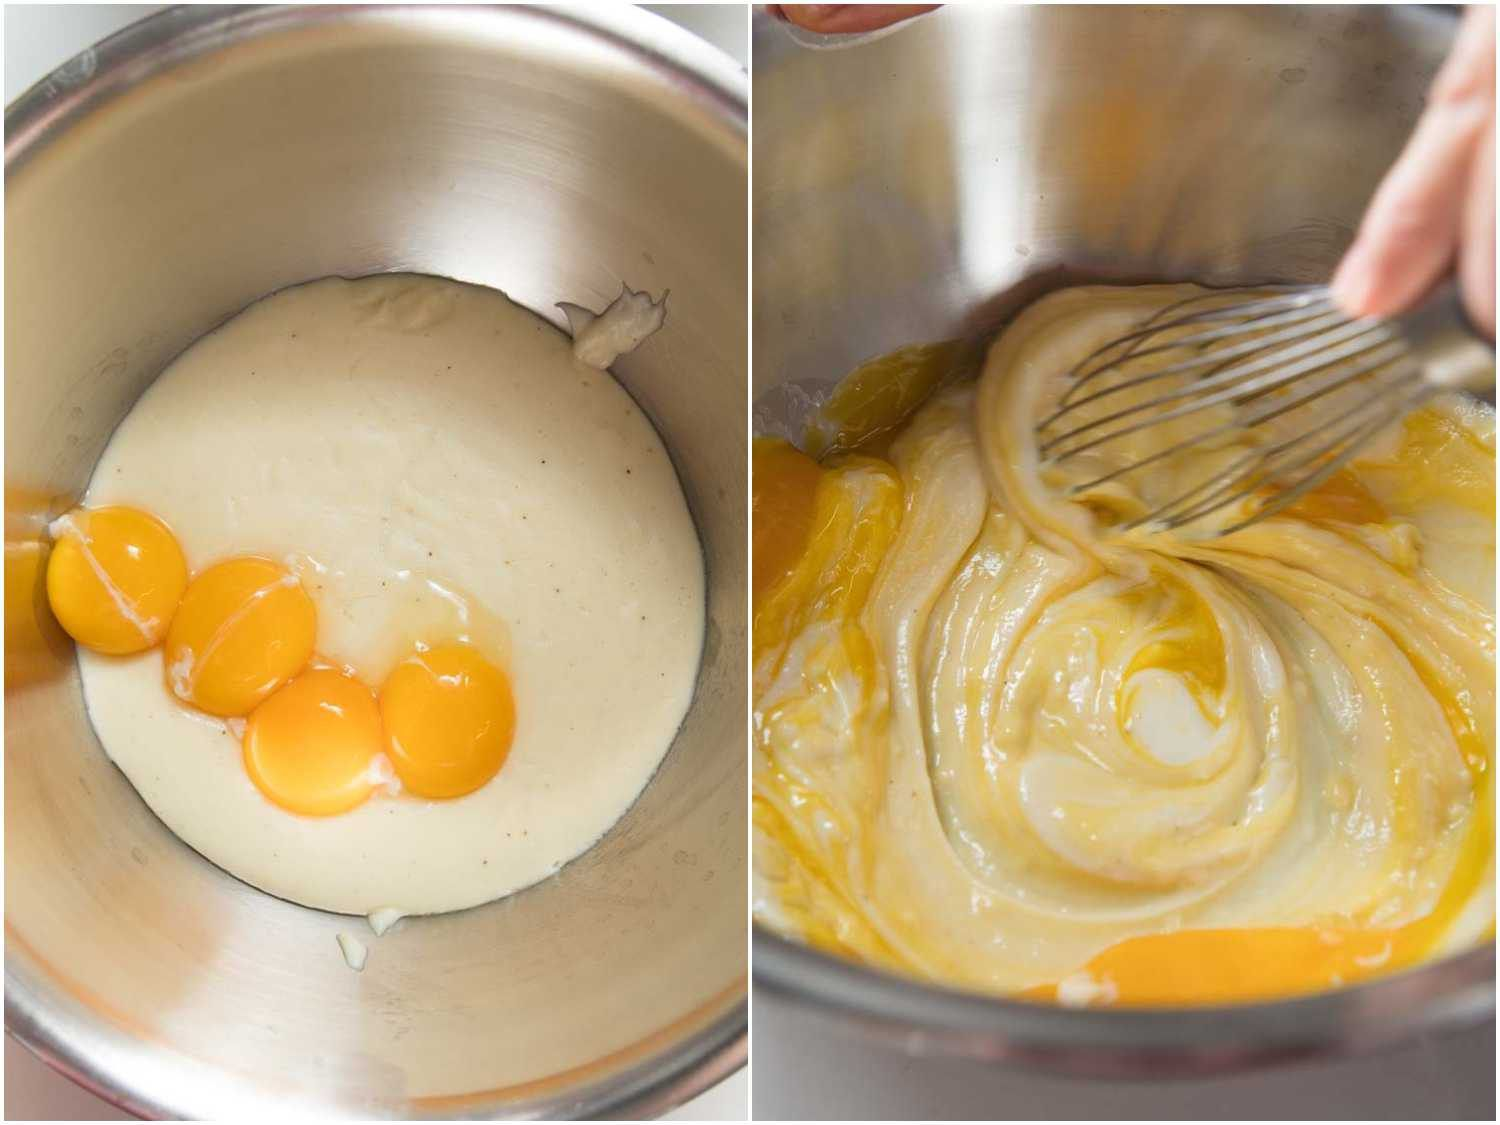 Mixing yolks into béchamel base for soufflé